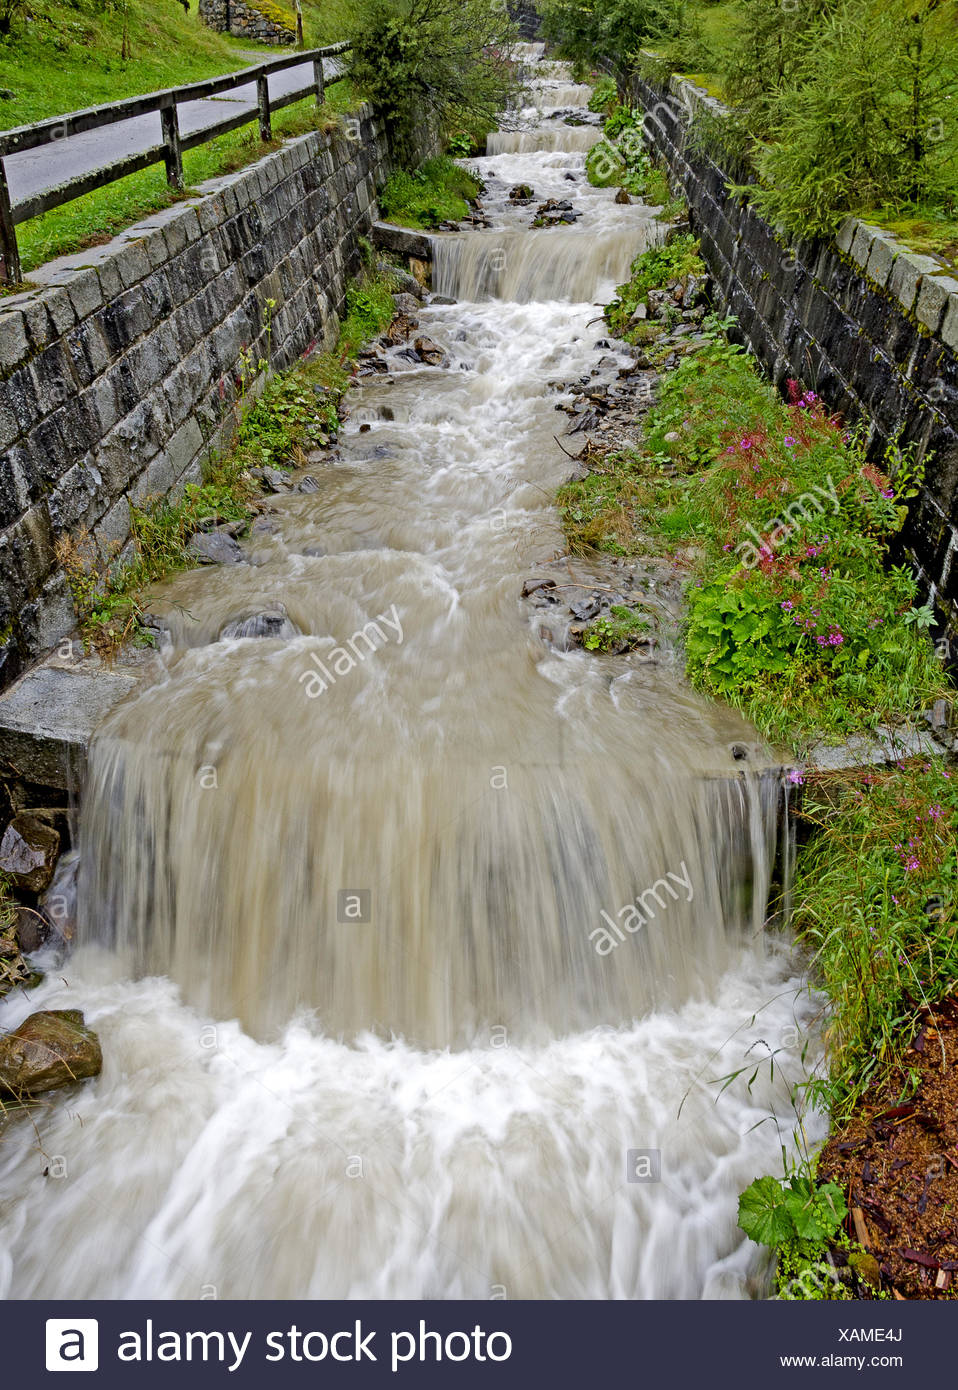 mountain torrent confined by banks - Stock Image